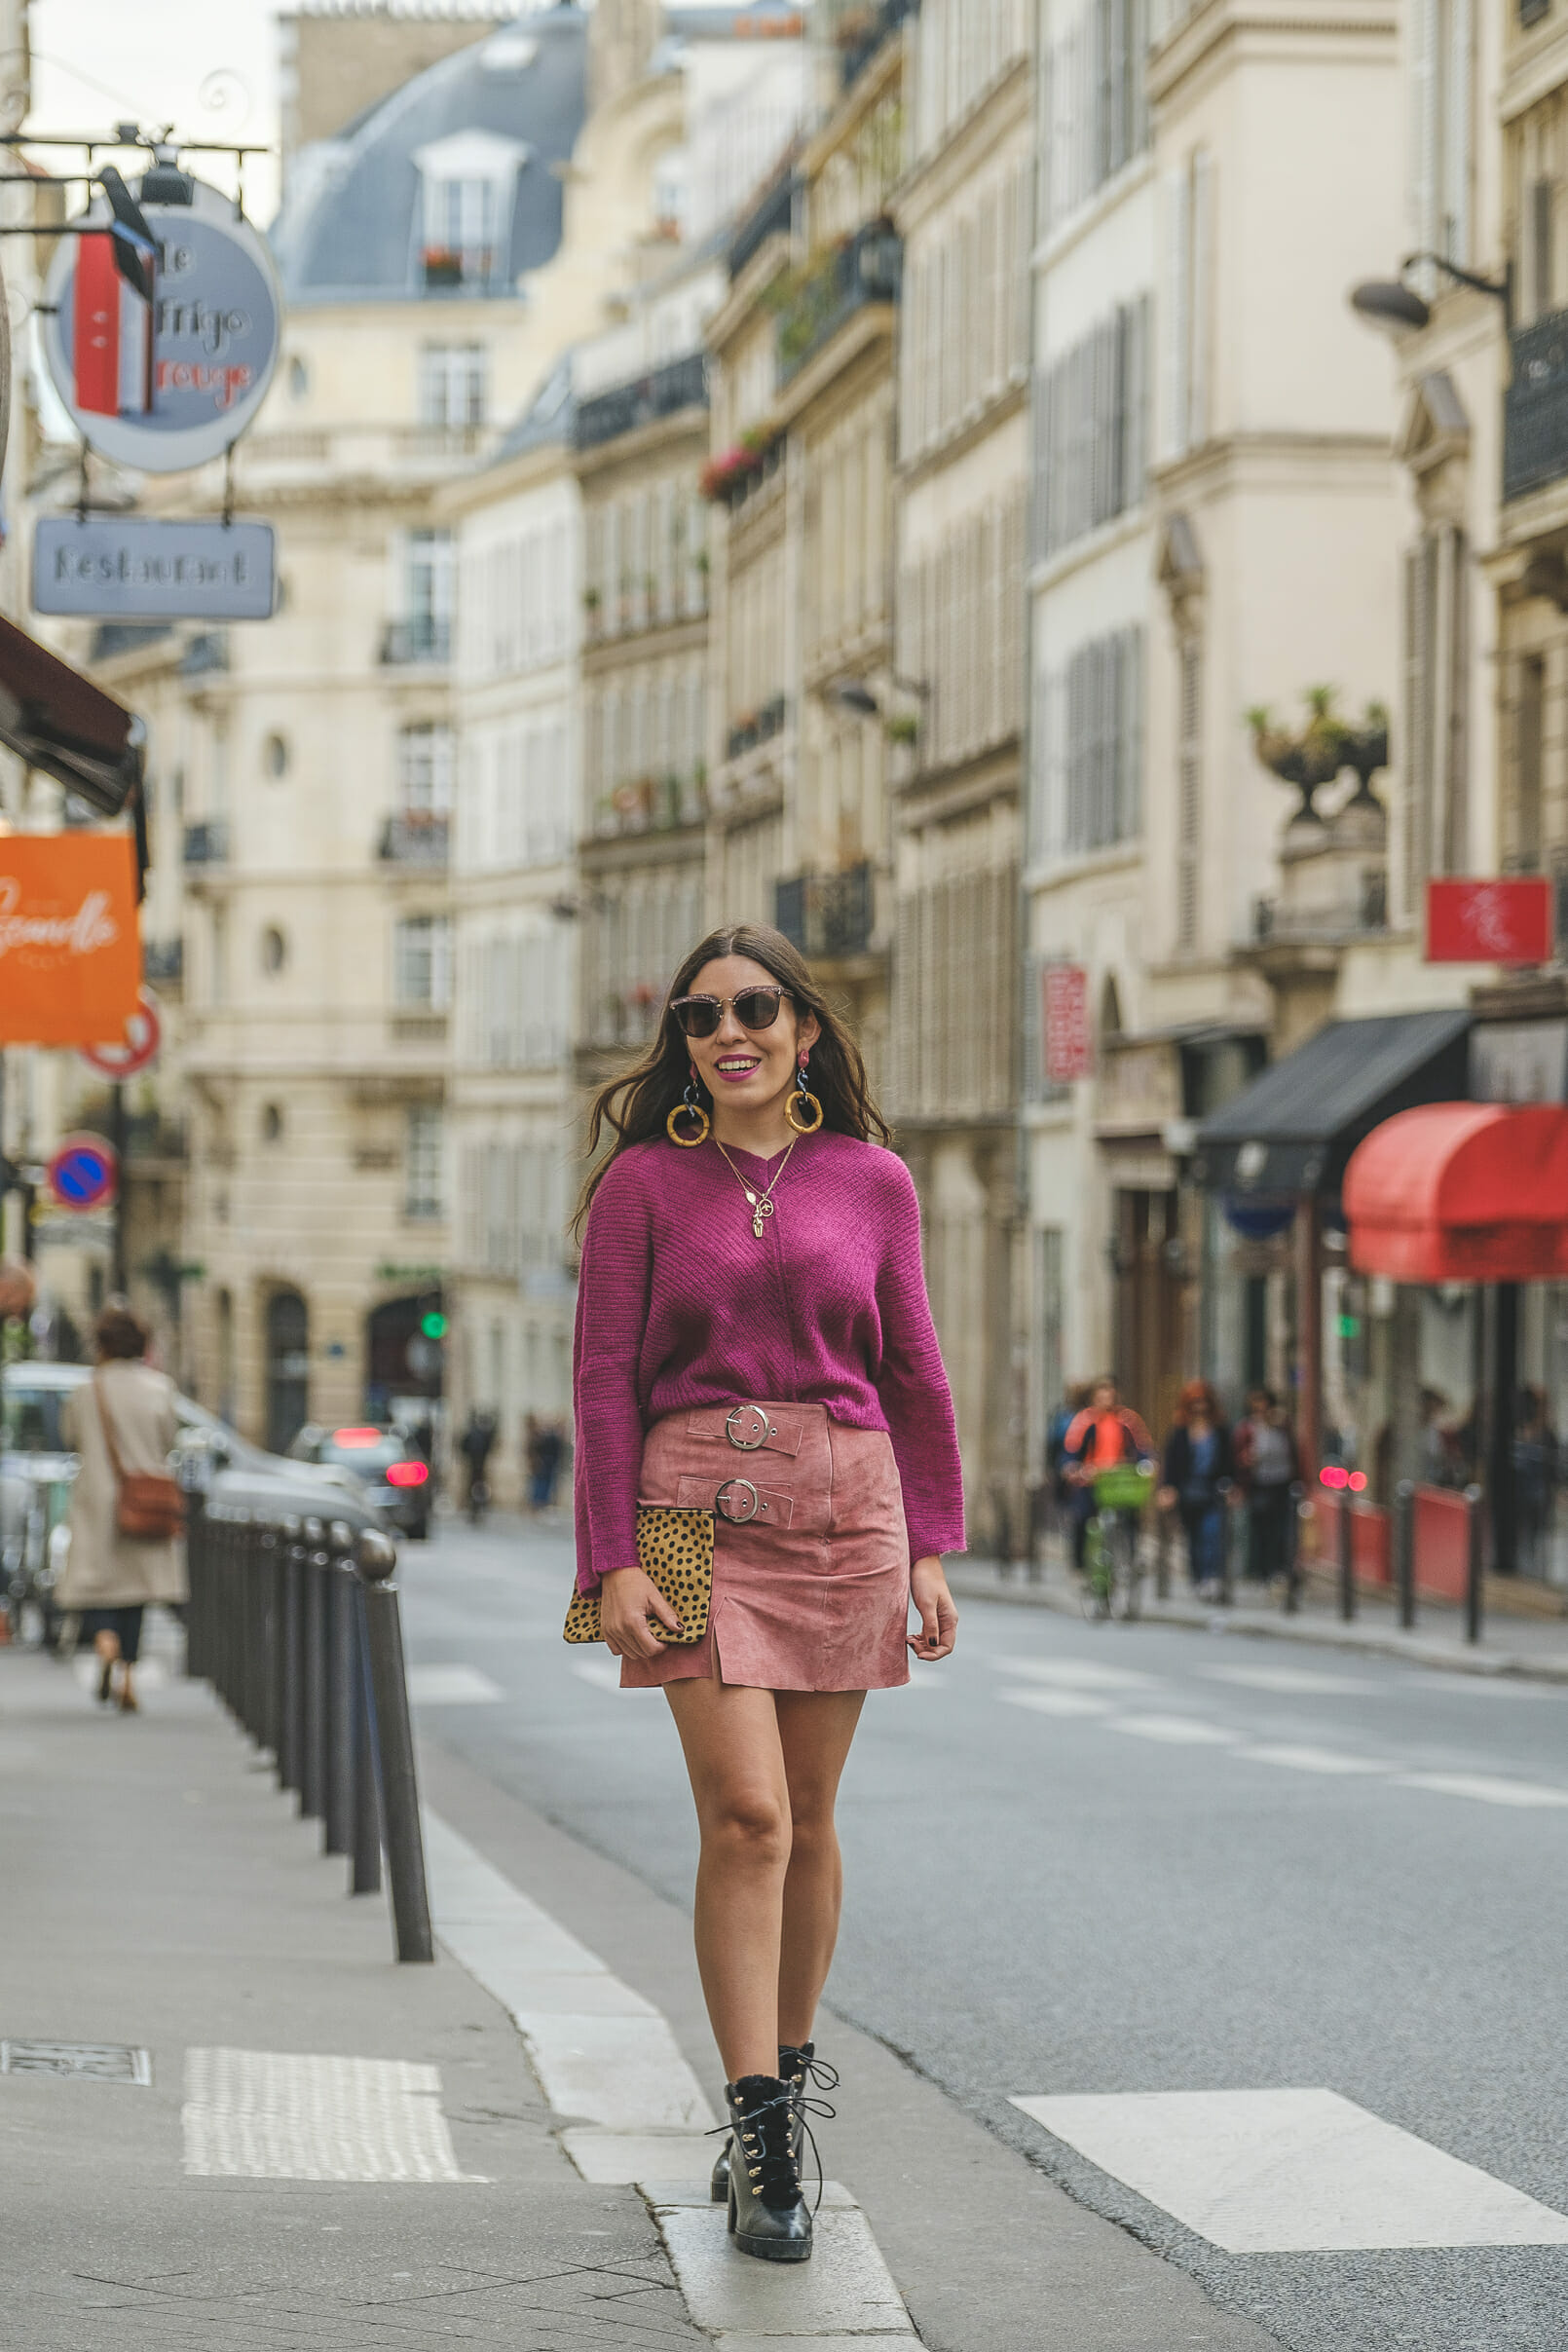 Le Fashionaire purple mohair mango knit pale pink leather buckles skirt black military stradivarius leather boots miu miu grey pink sunglasses 9048 EN purple mohair mango knit pale pink leather buckles skirt black military stradivarius leather boots miu miu grey pink sunglasses 9048 EN